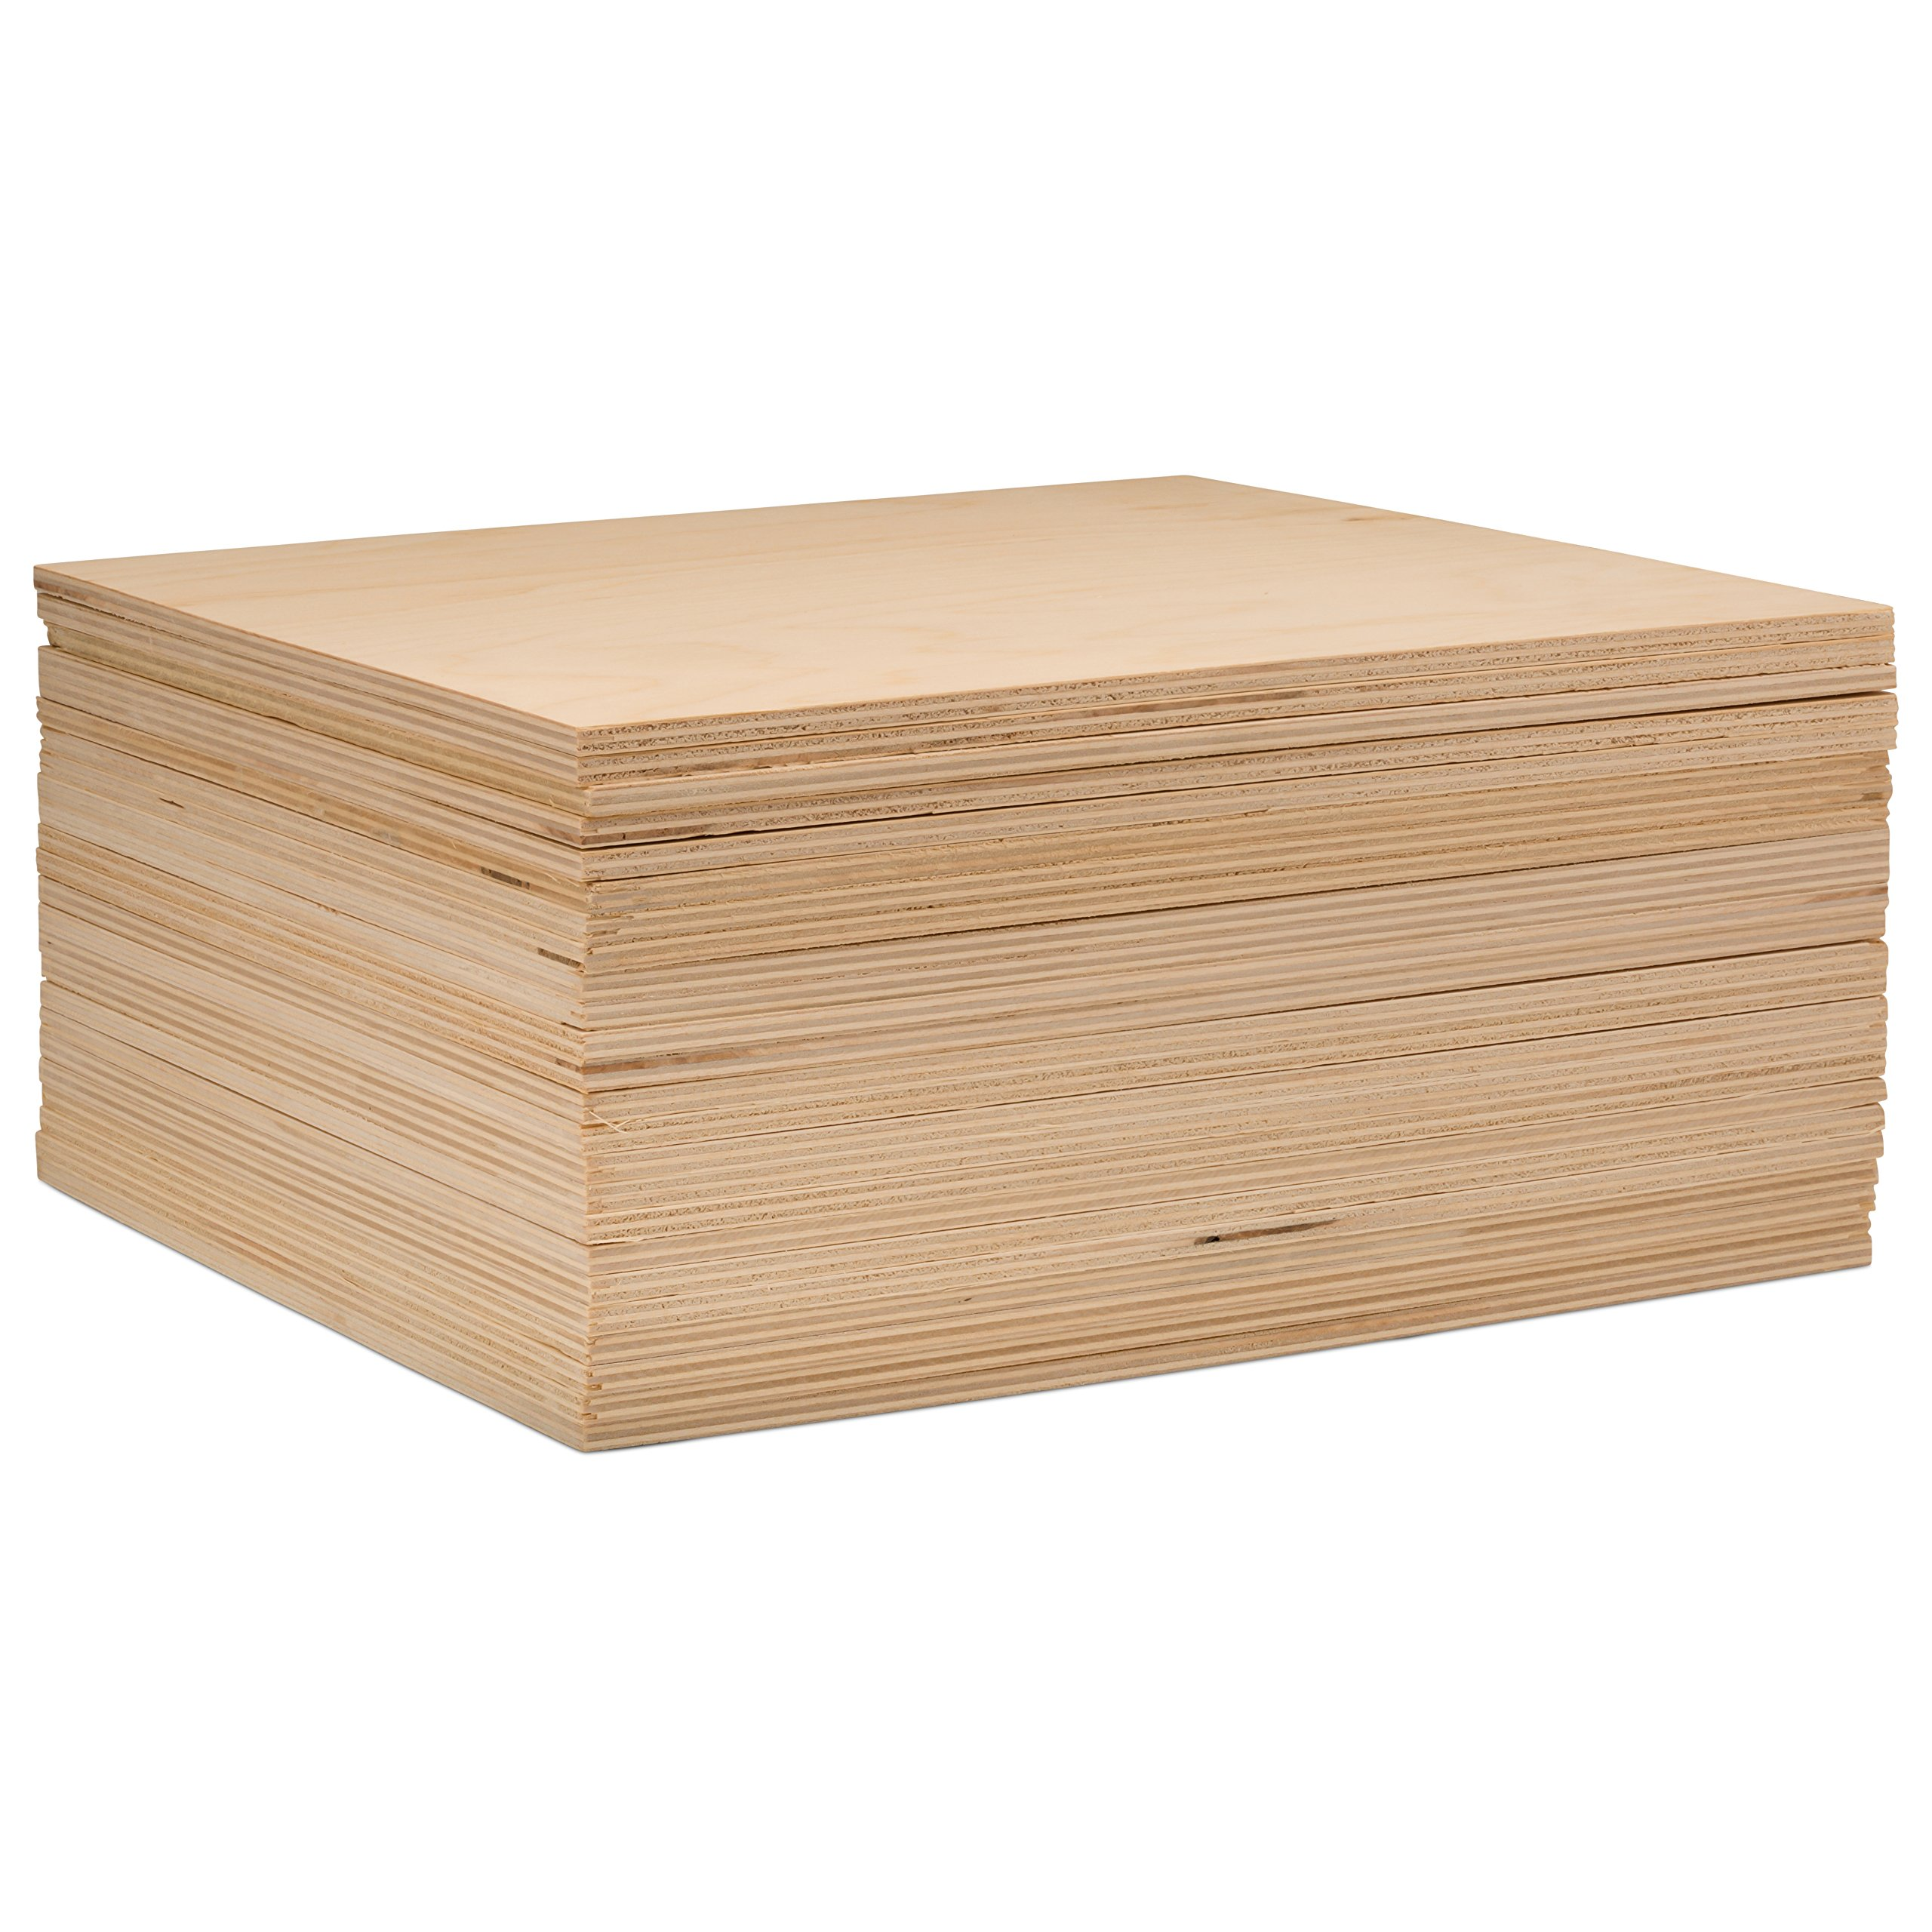 3 mm 1/8'' X 8'' X 8'' Premium Baltic Birch Plywood – B/BB Grade - 8 Flat Sheets by Woodpeckers